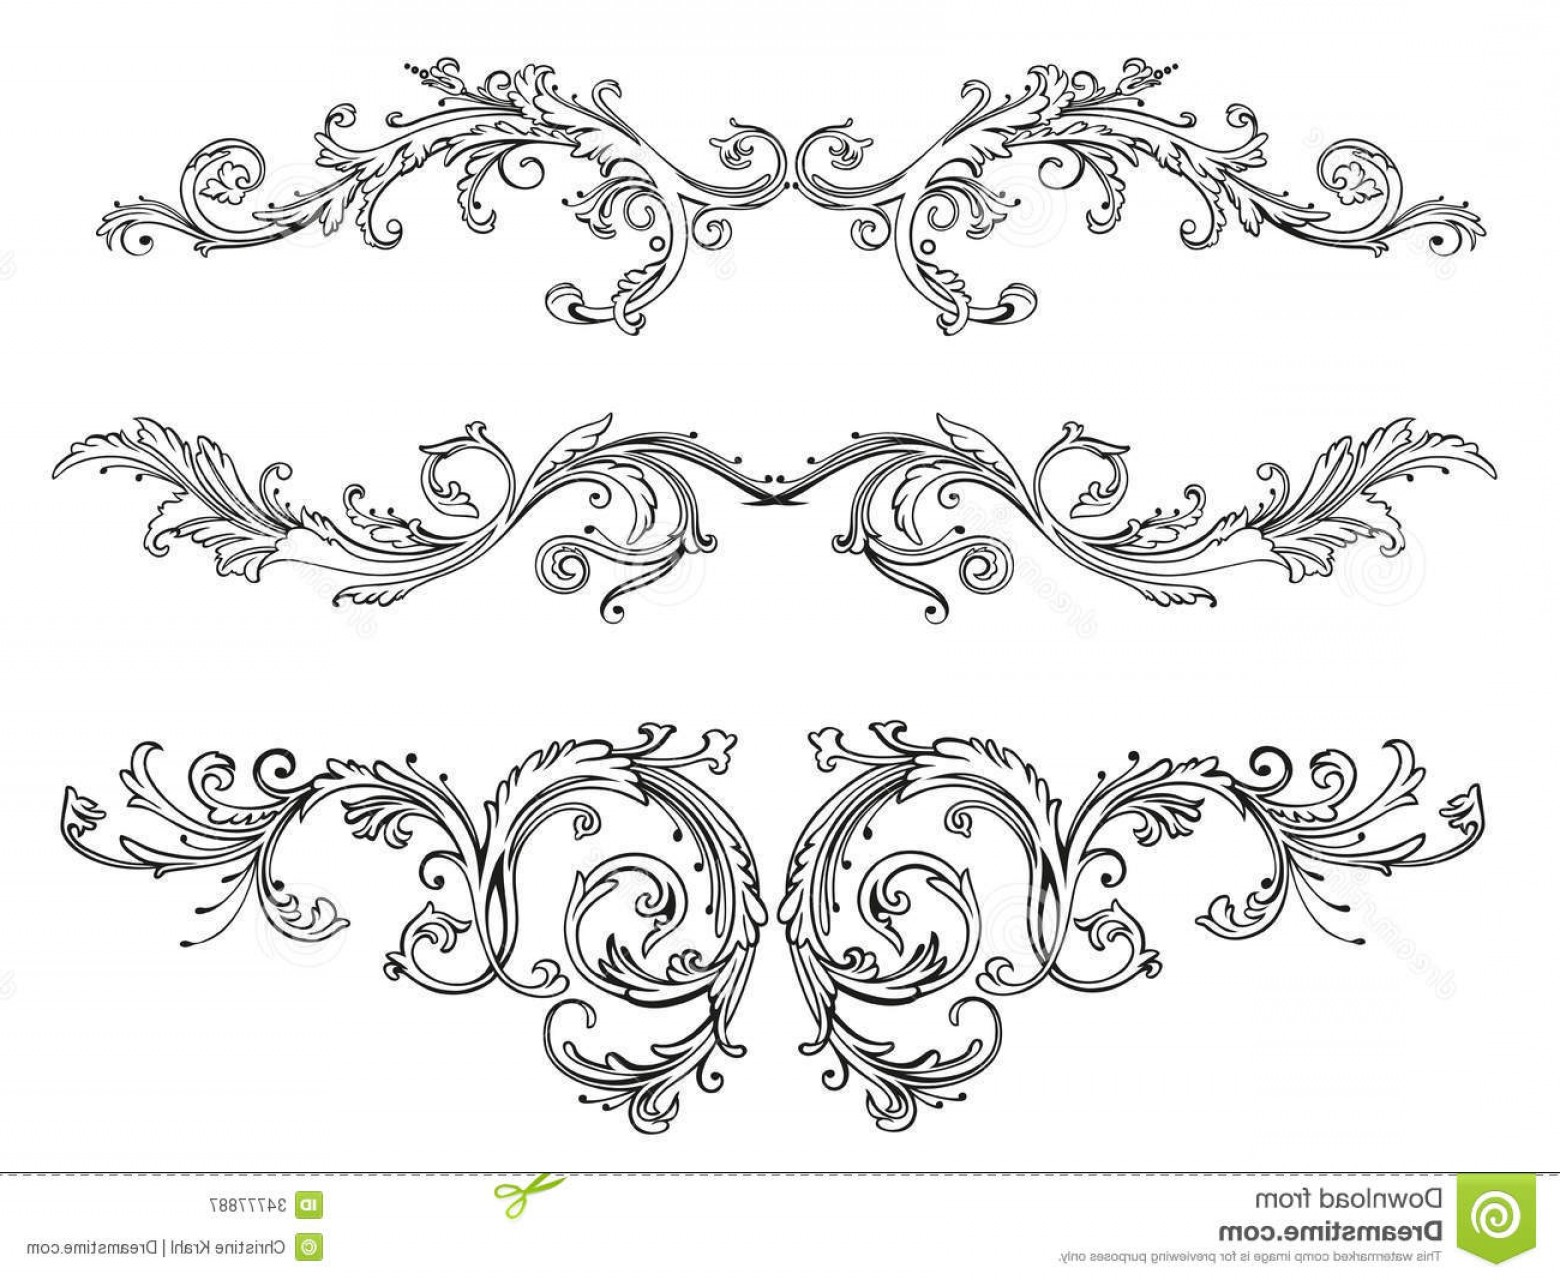 1560x1280 Royalty Free Stock Photography Vintage Floral Border Tendril